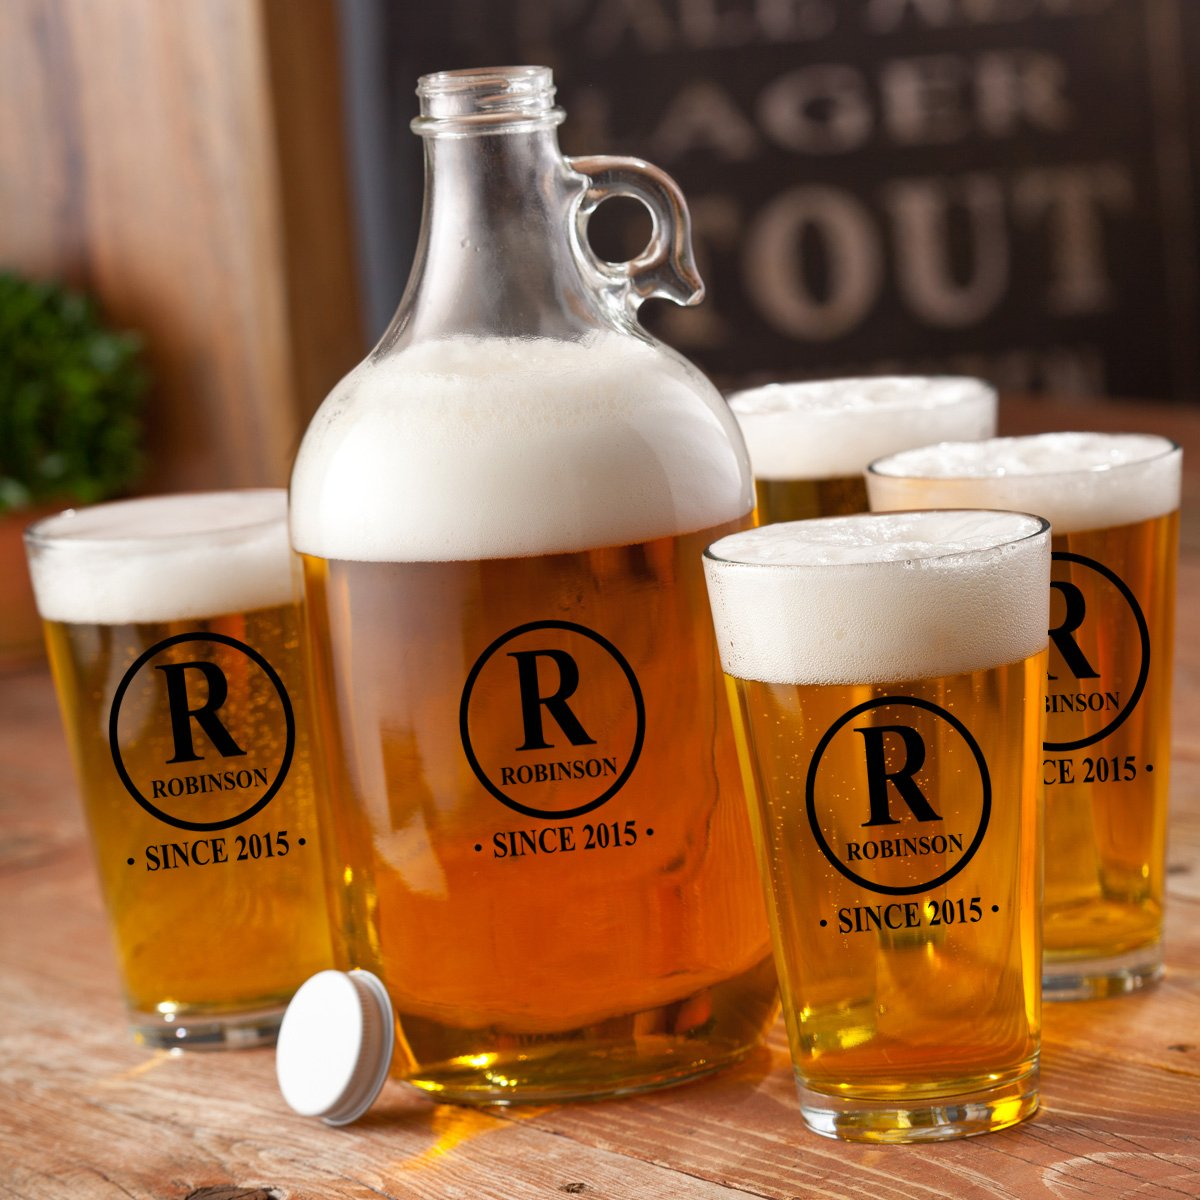 Personalized Beer Printed Growler Set With 4 -16 oz Pint Glasses - Engraved Beer Growler